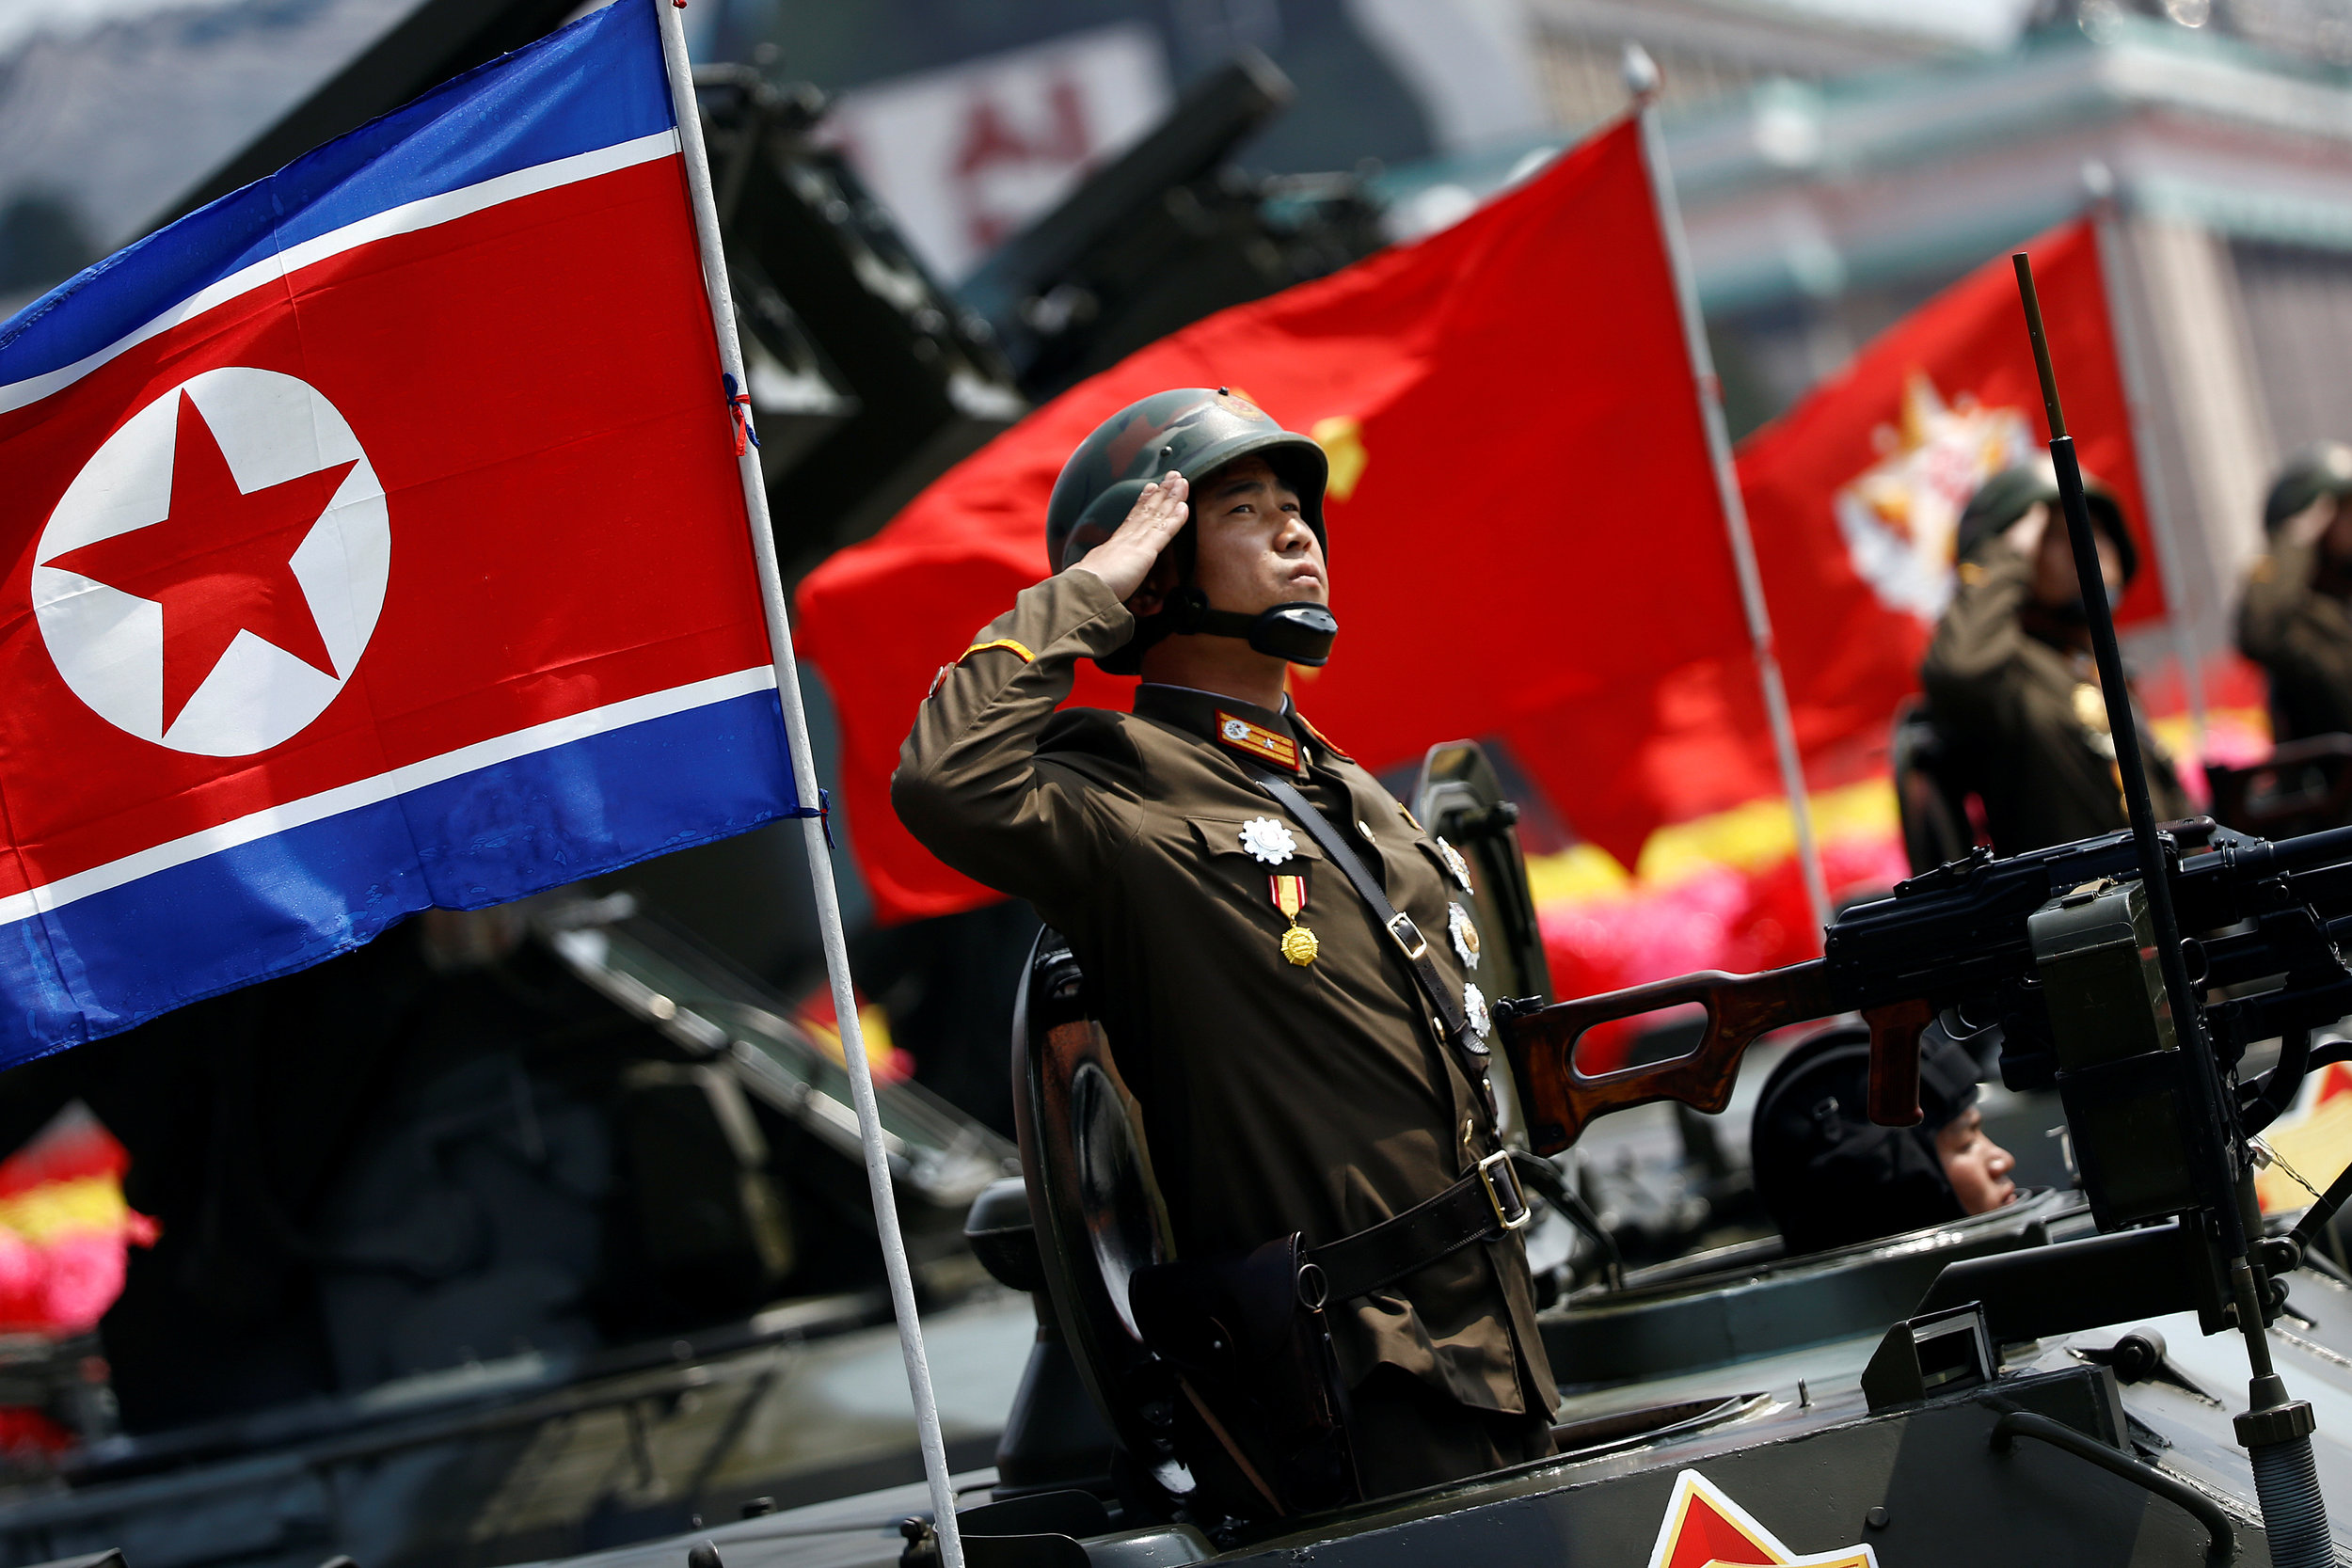 North Korean has been developing its military for years. PC: brookings.edu